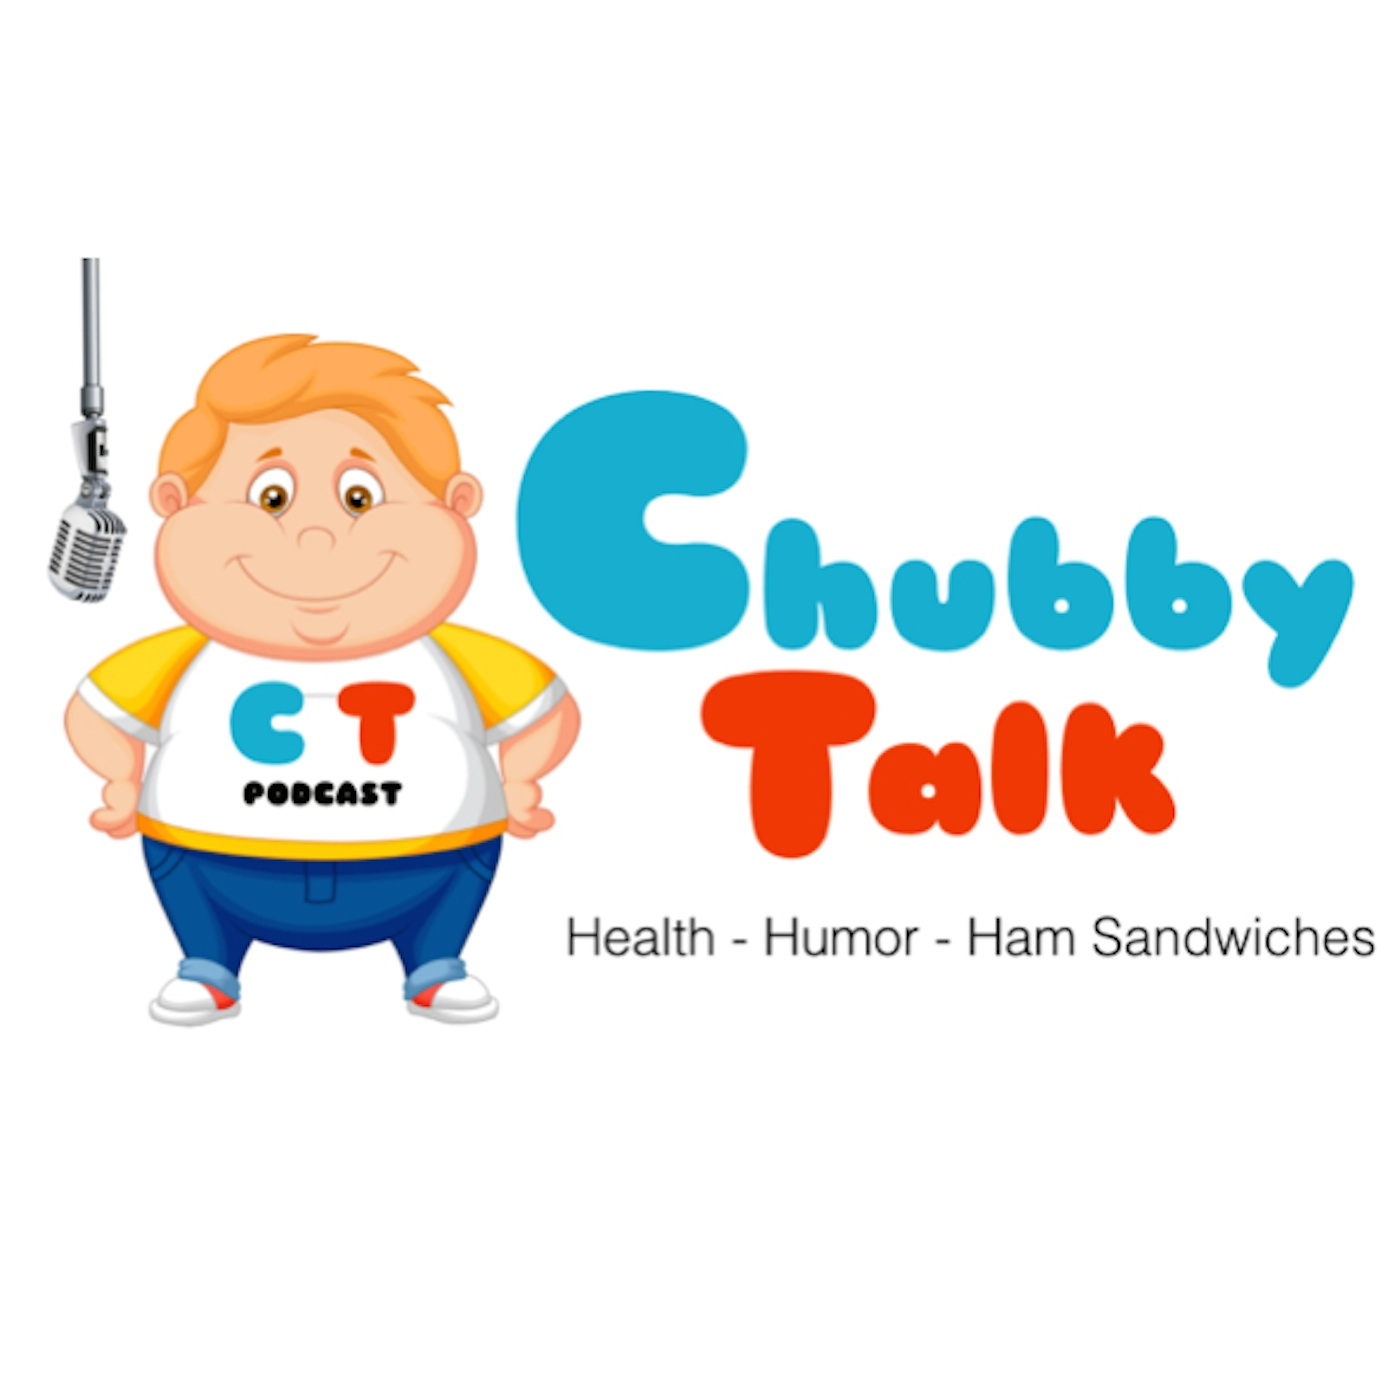 Chubby Talk Podcast